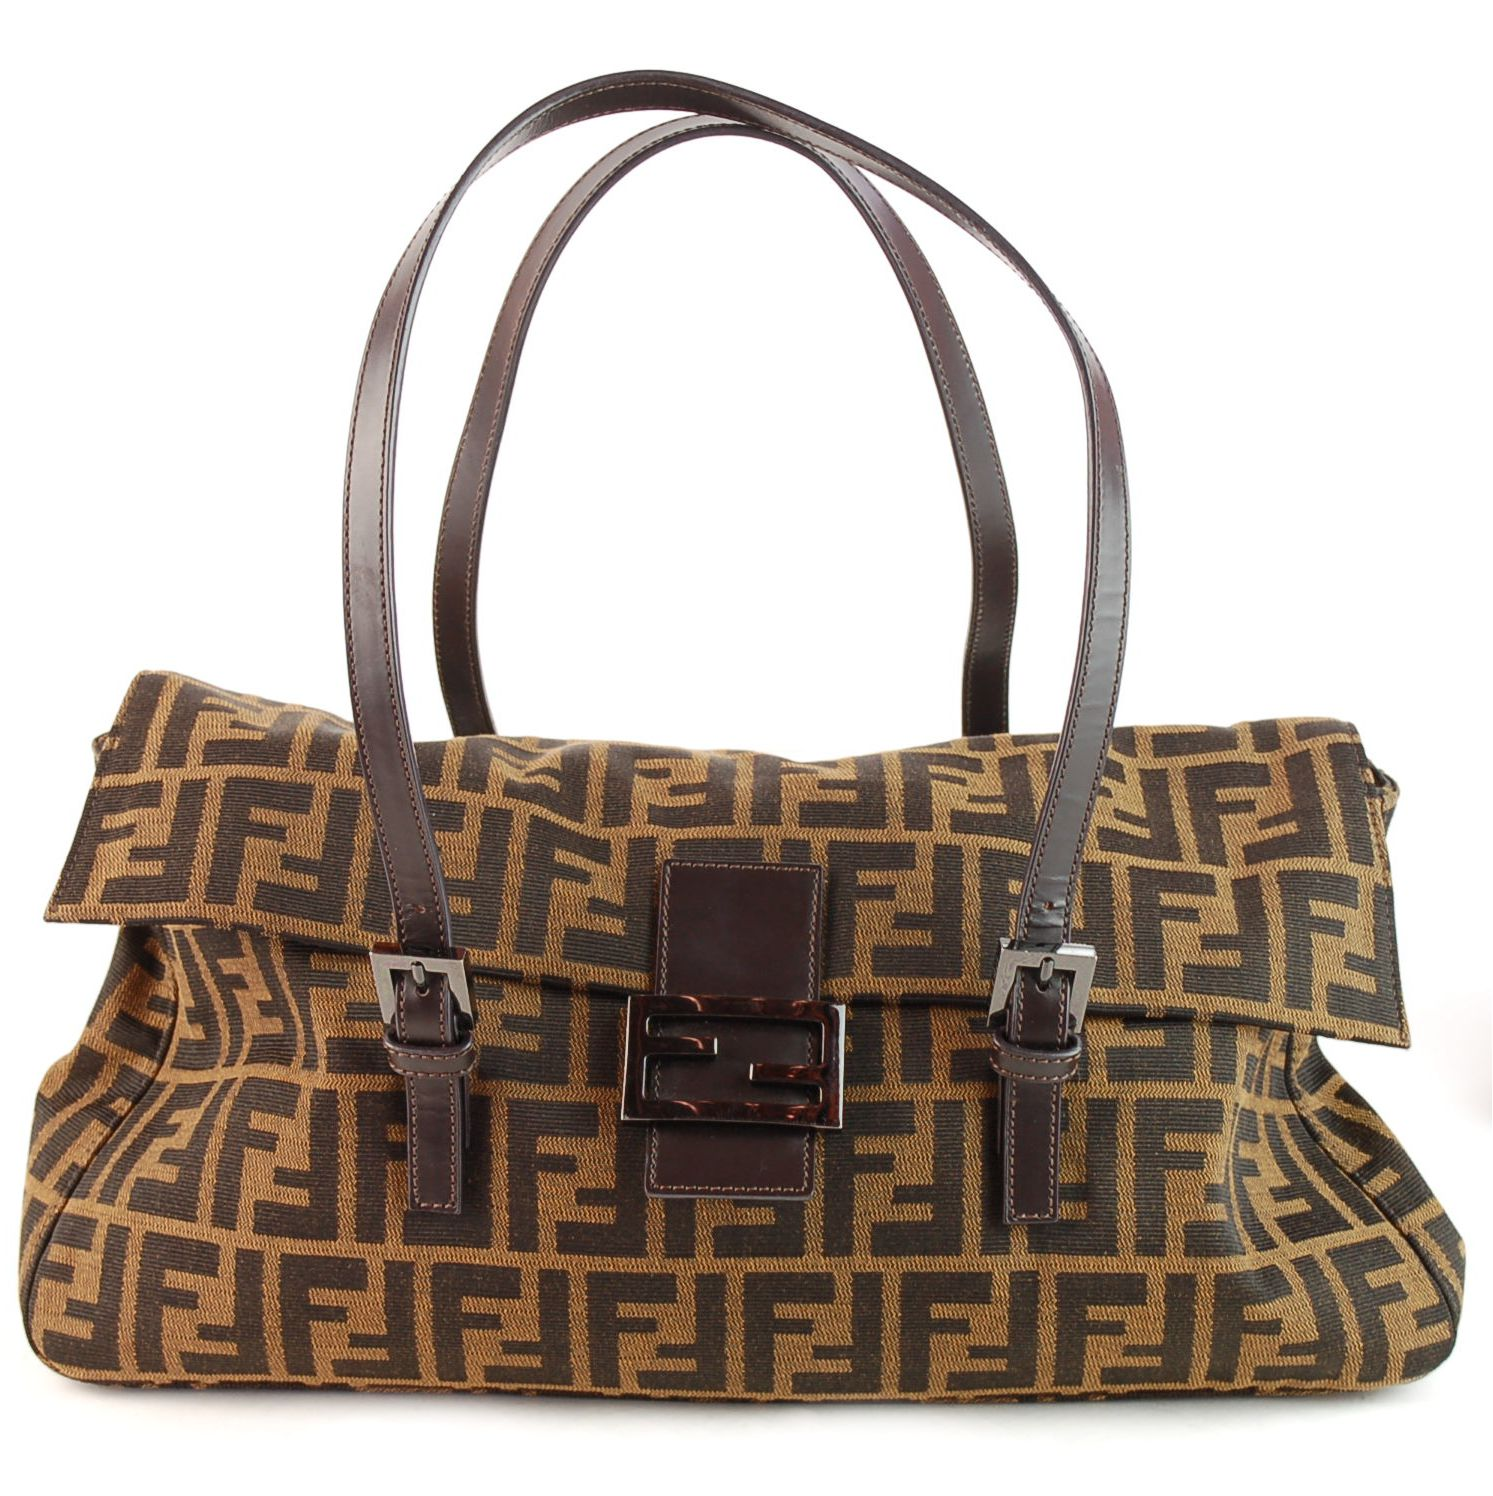 2e8687c12 Fendi Monogram Purses | Stanford Center for Opportunity Policy in ...